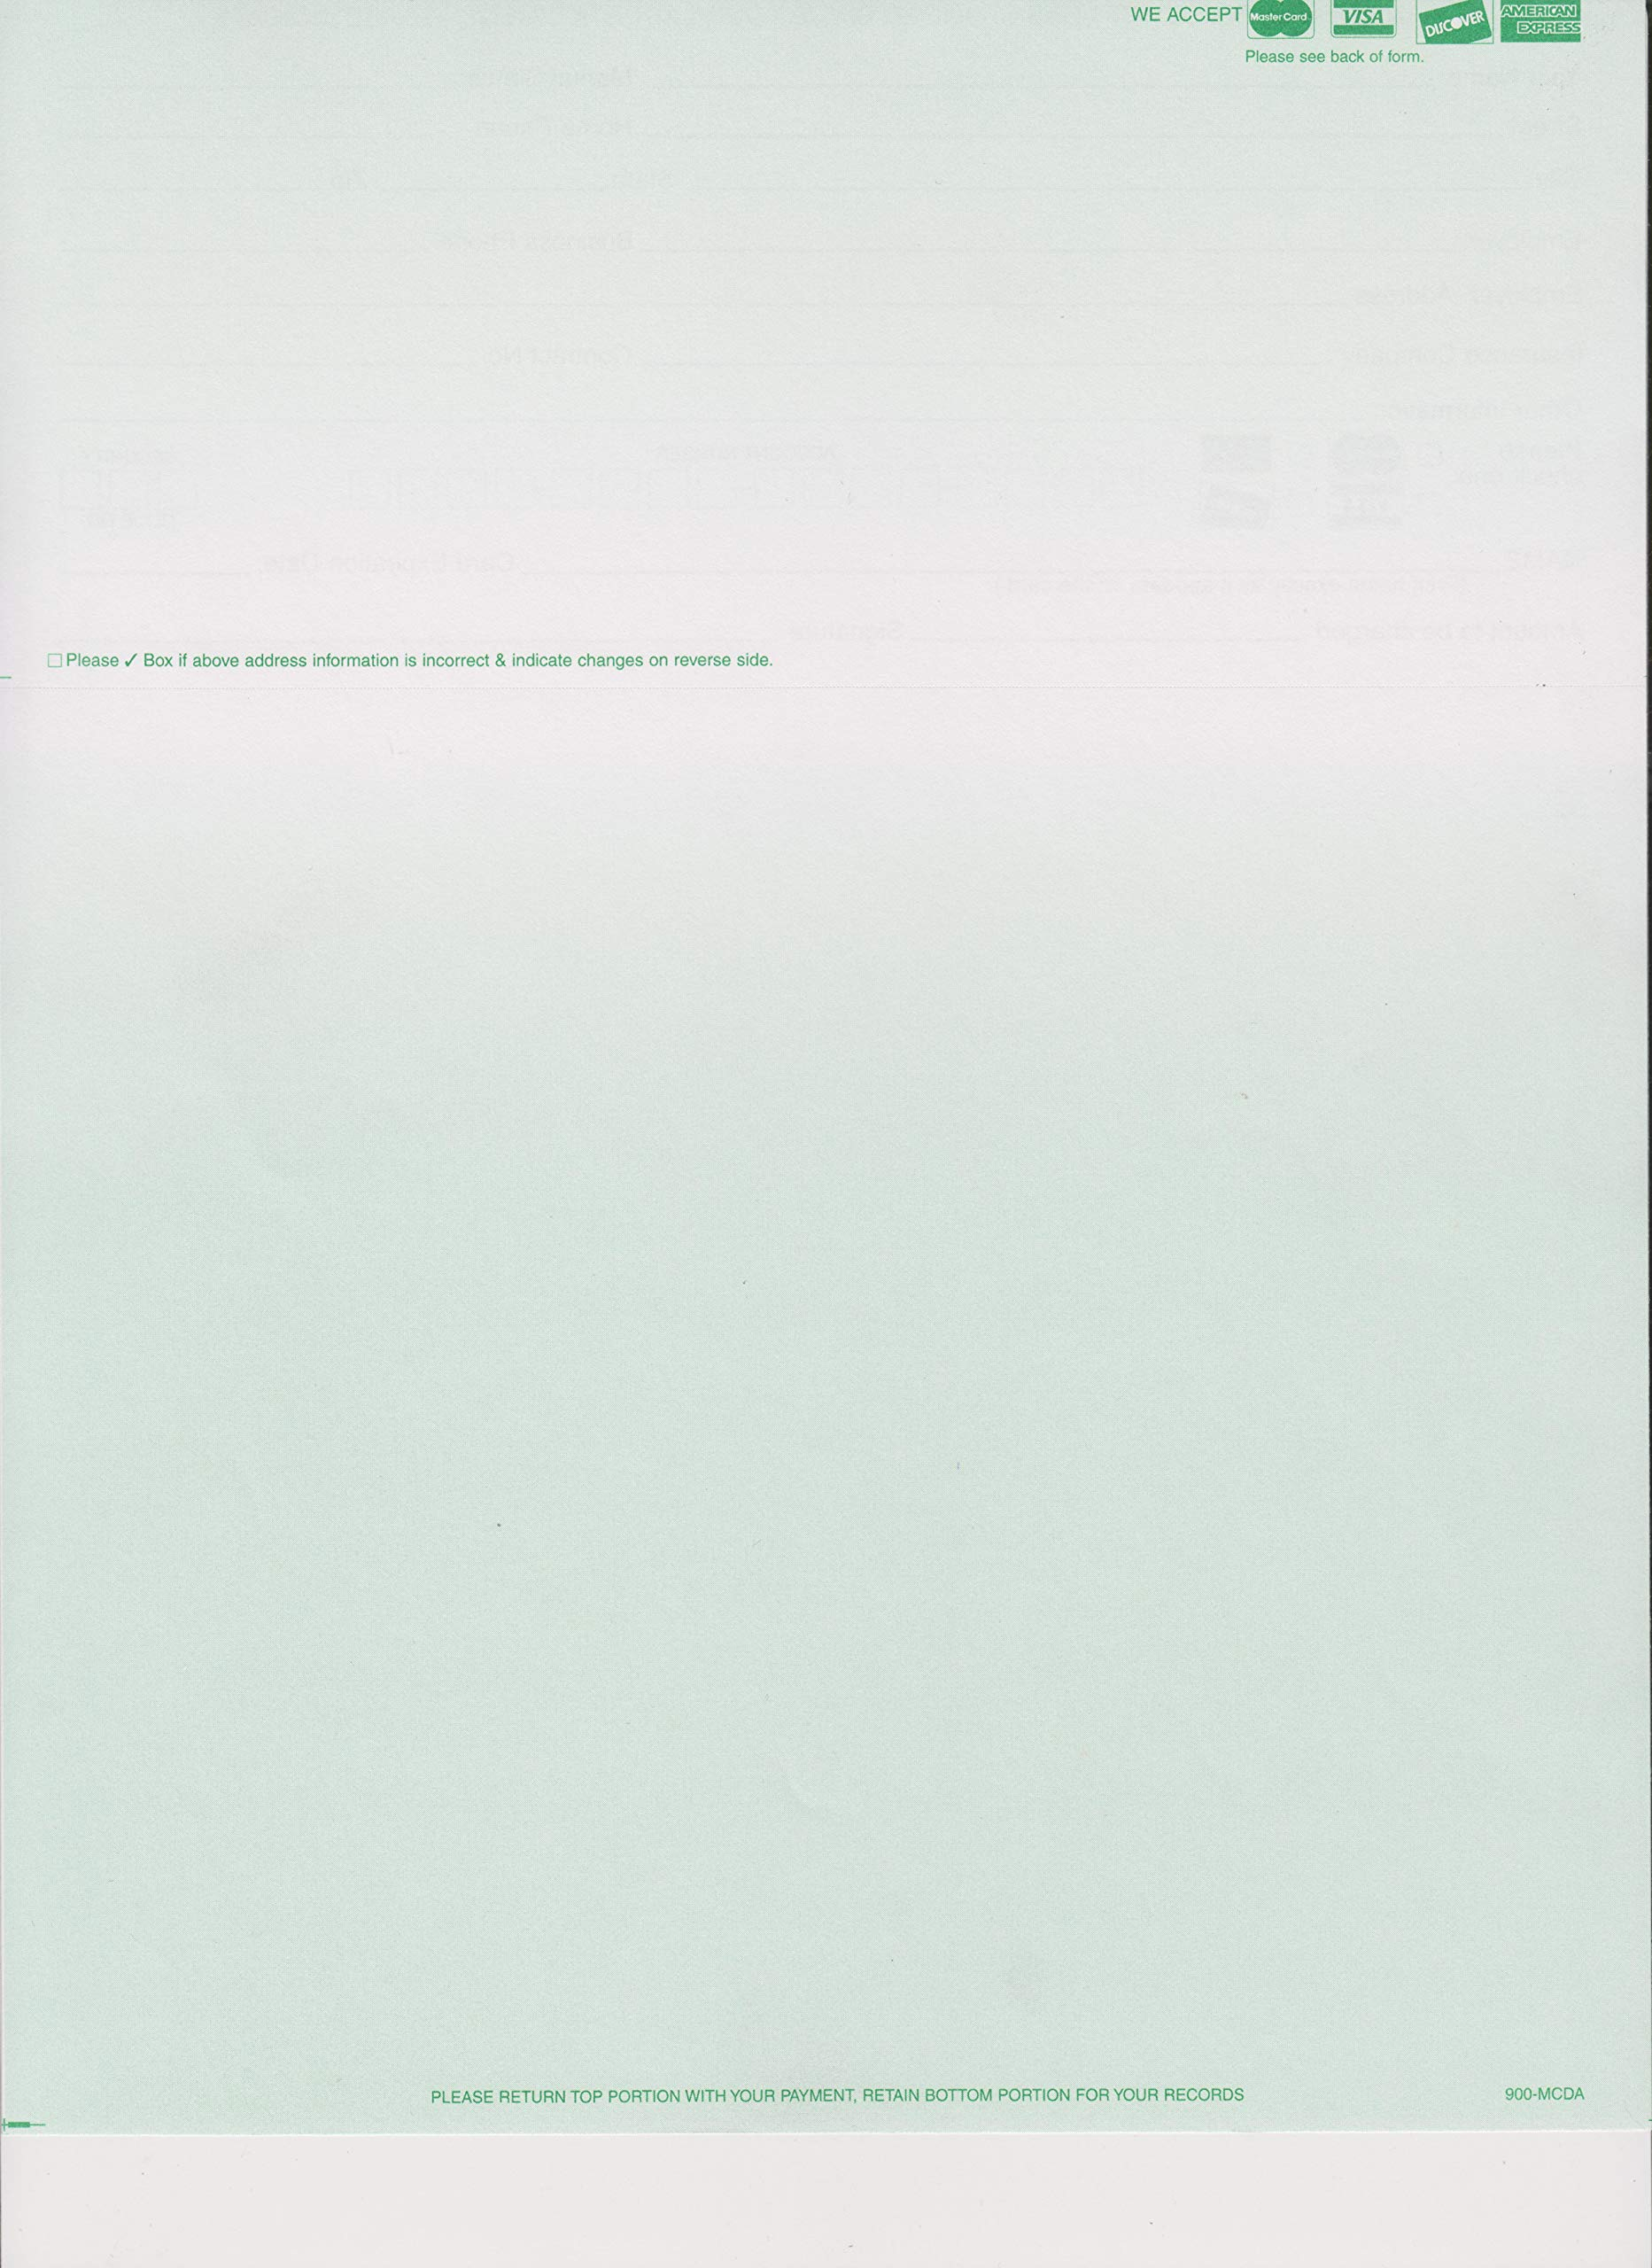 500 COLORED BLANK PERFORATED STATEMENT PAPER WITH CREDIT CARD LOGOS (GREEN)